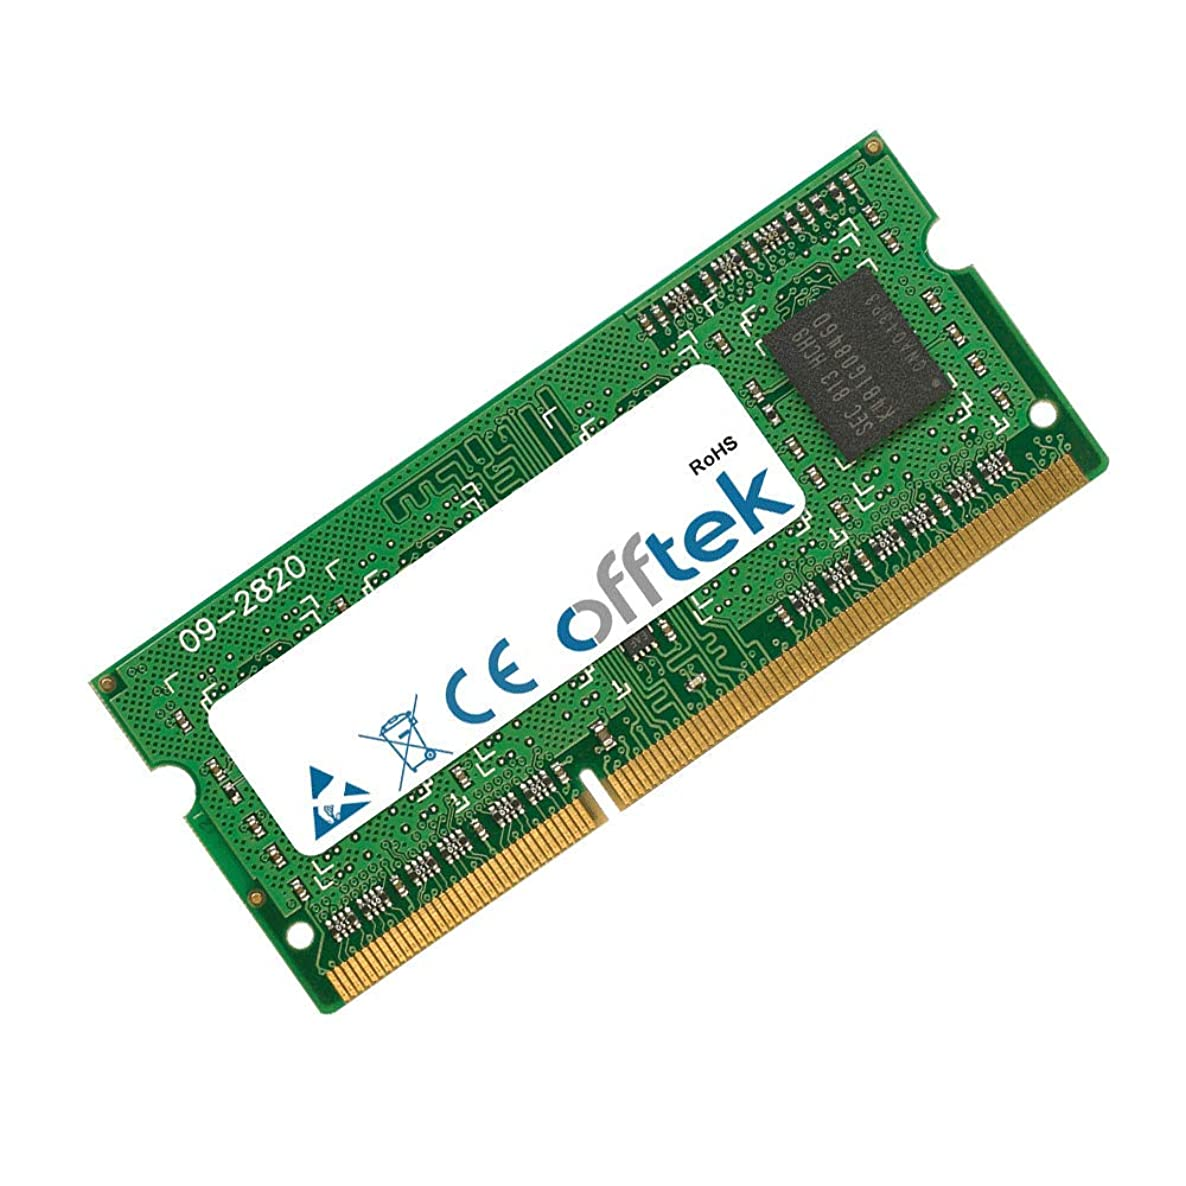 4GB RAM Memory for Acer Aspire One 725-0884 (DDR3-8500) - Netbook Memory Upgrade